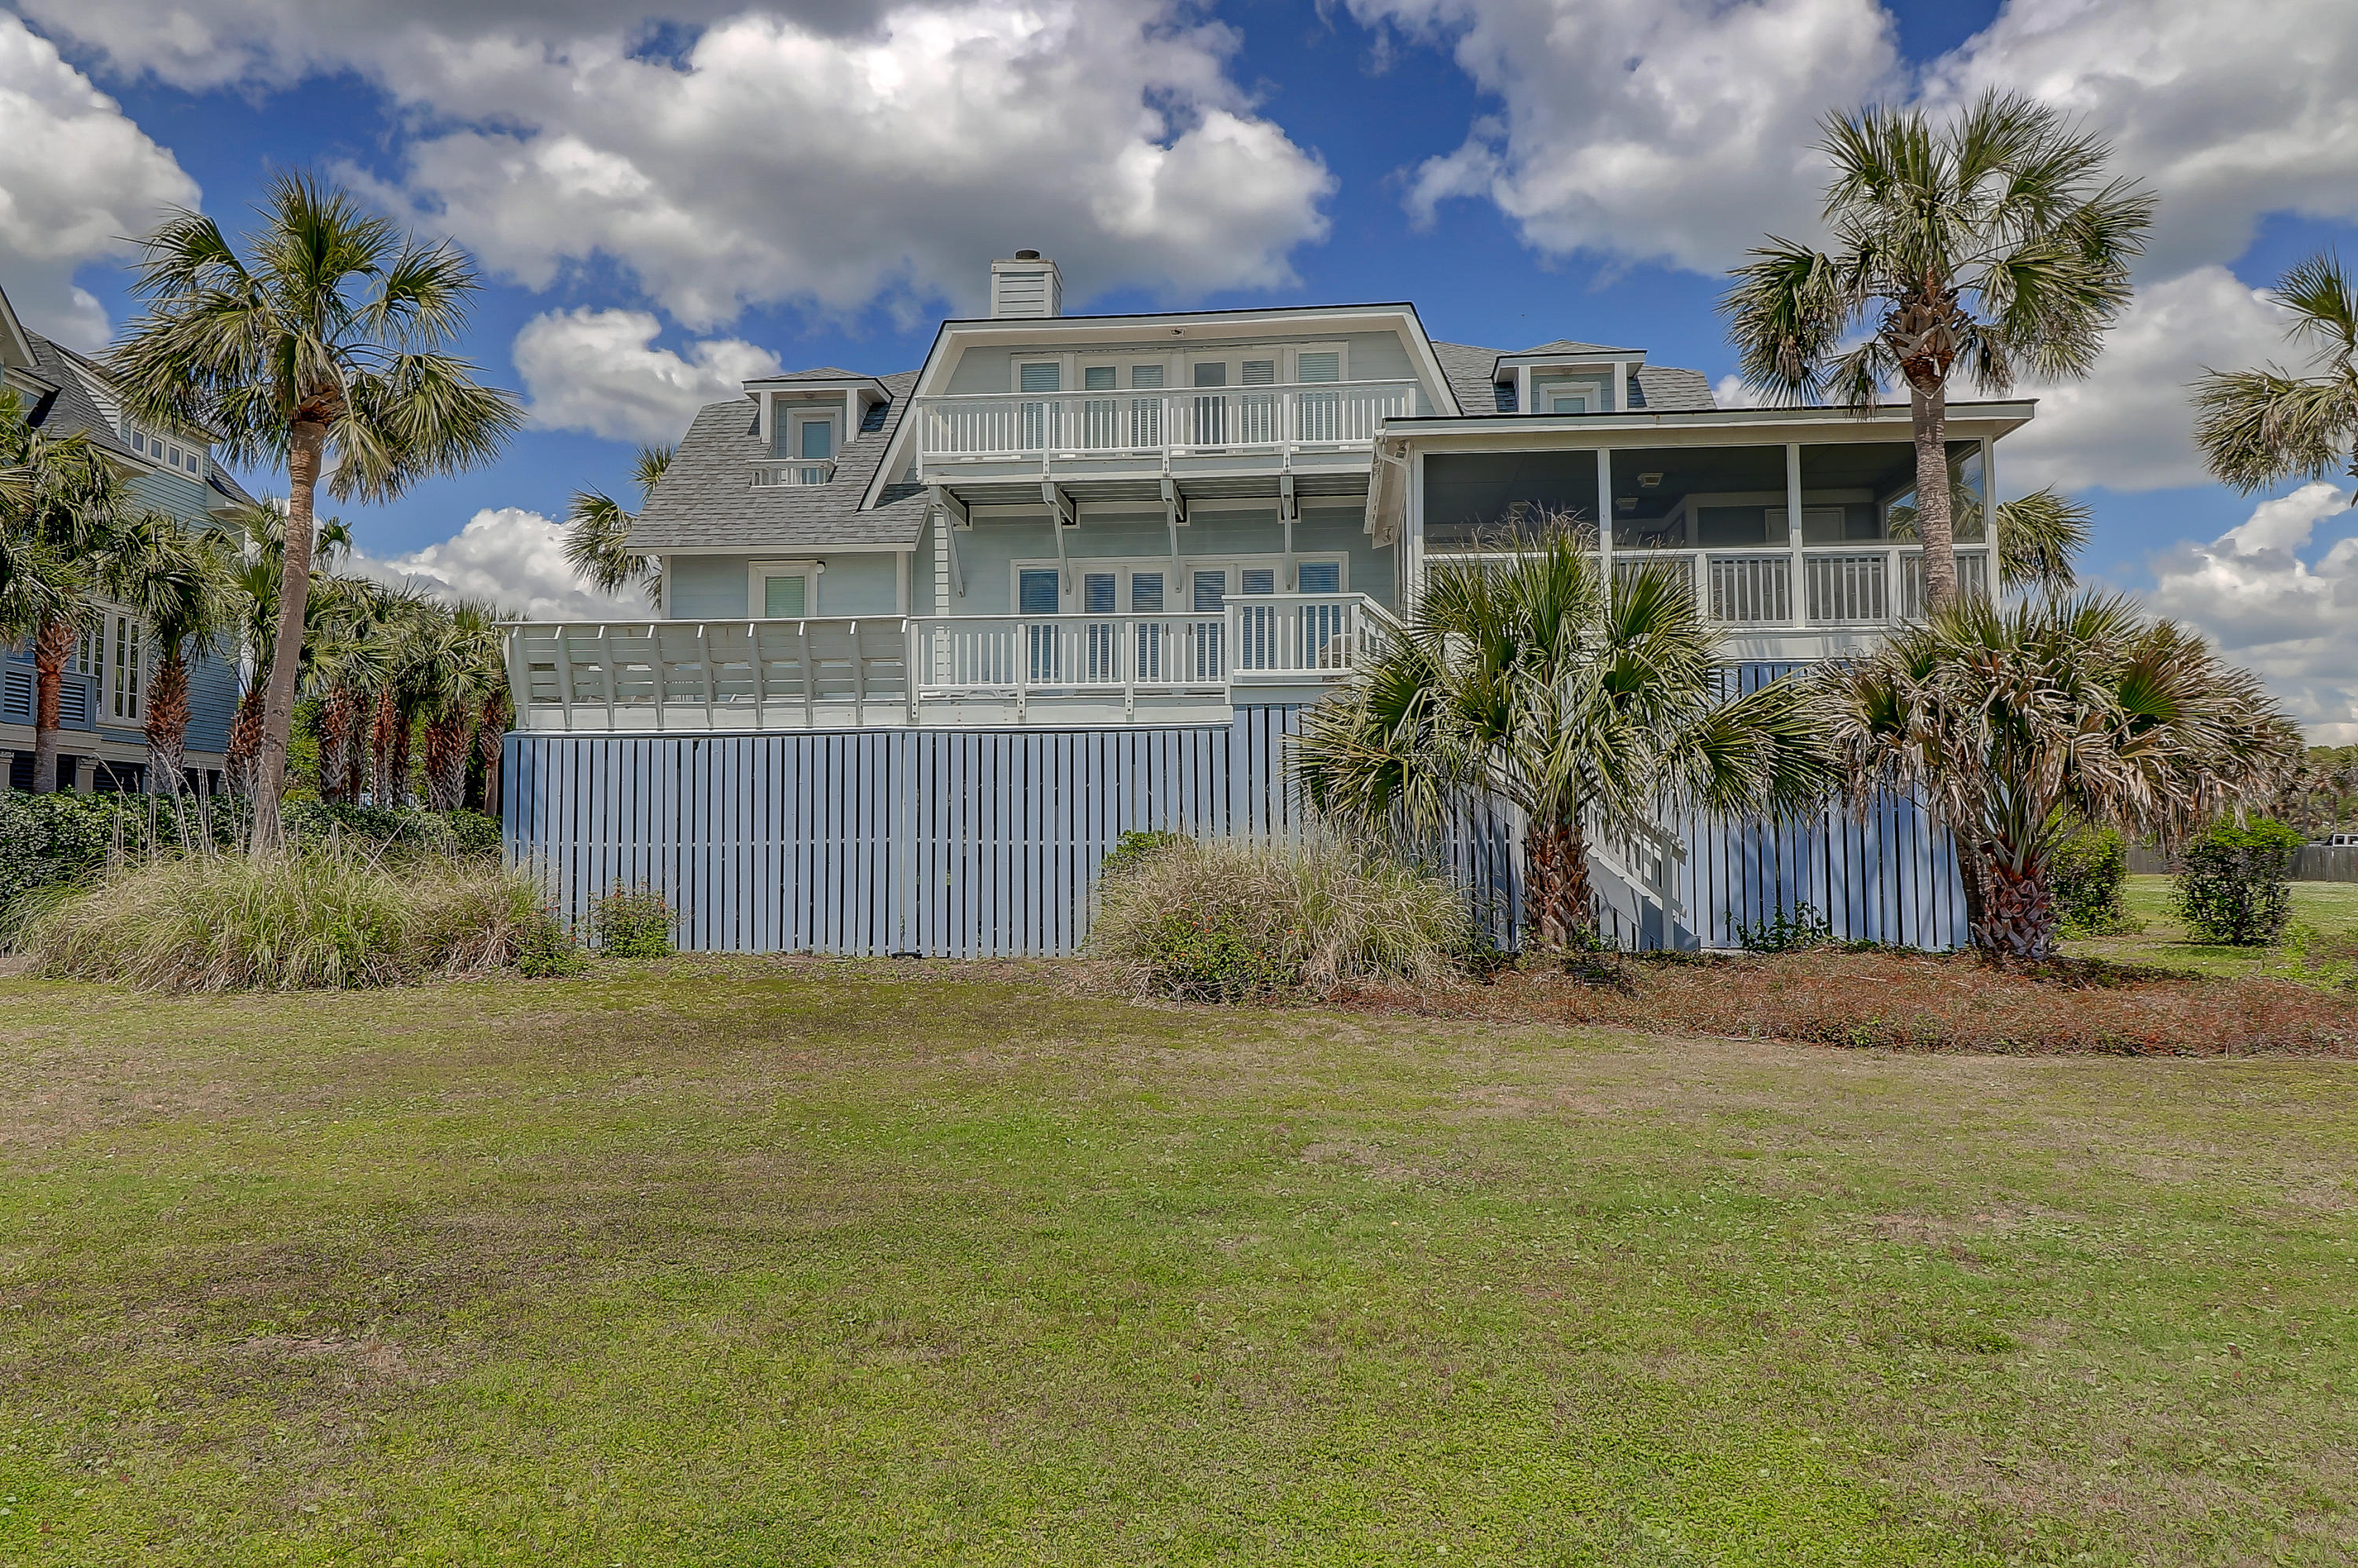 Isle of Palms Homes For Sale - 1 47th (1/13th), Isle of Palms, SC - 65